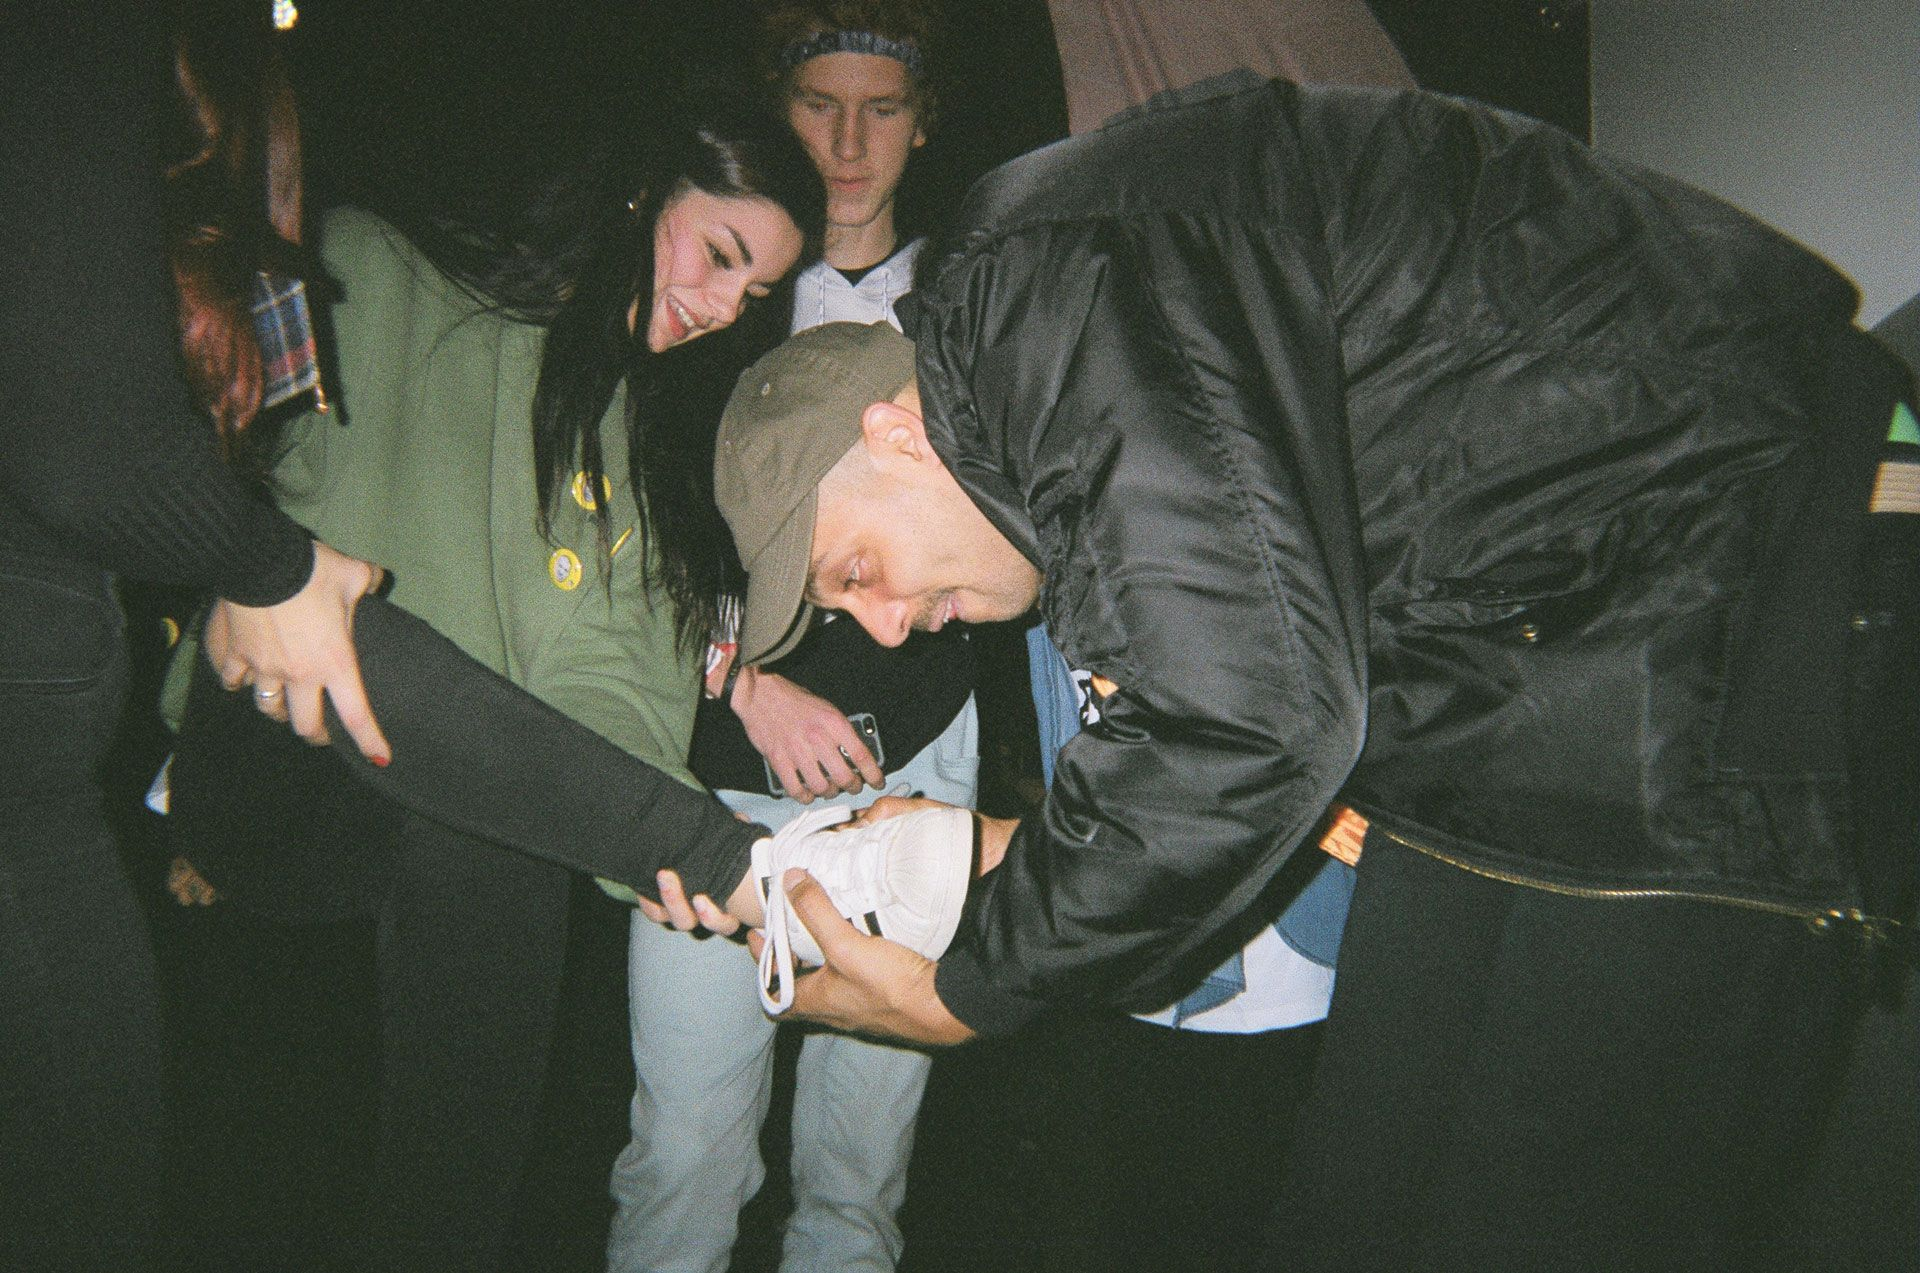 Alaclair Ensemble bandmember signing an autograph on a fan's shoe in behind the scenes of L'Osstidfilm documentary filmed by Vincent Ruel-Cote from Les Gamins about L'Osstidtour